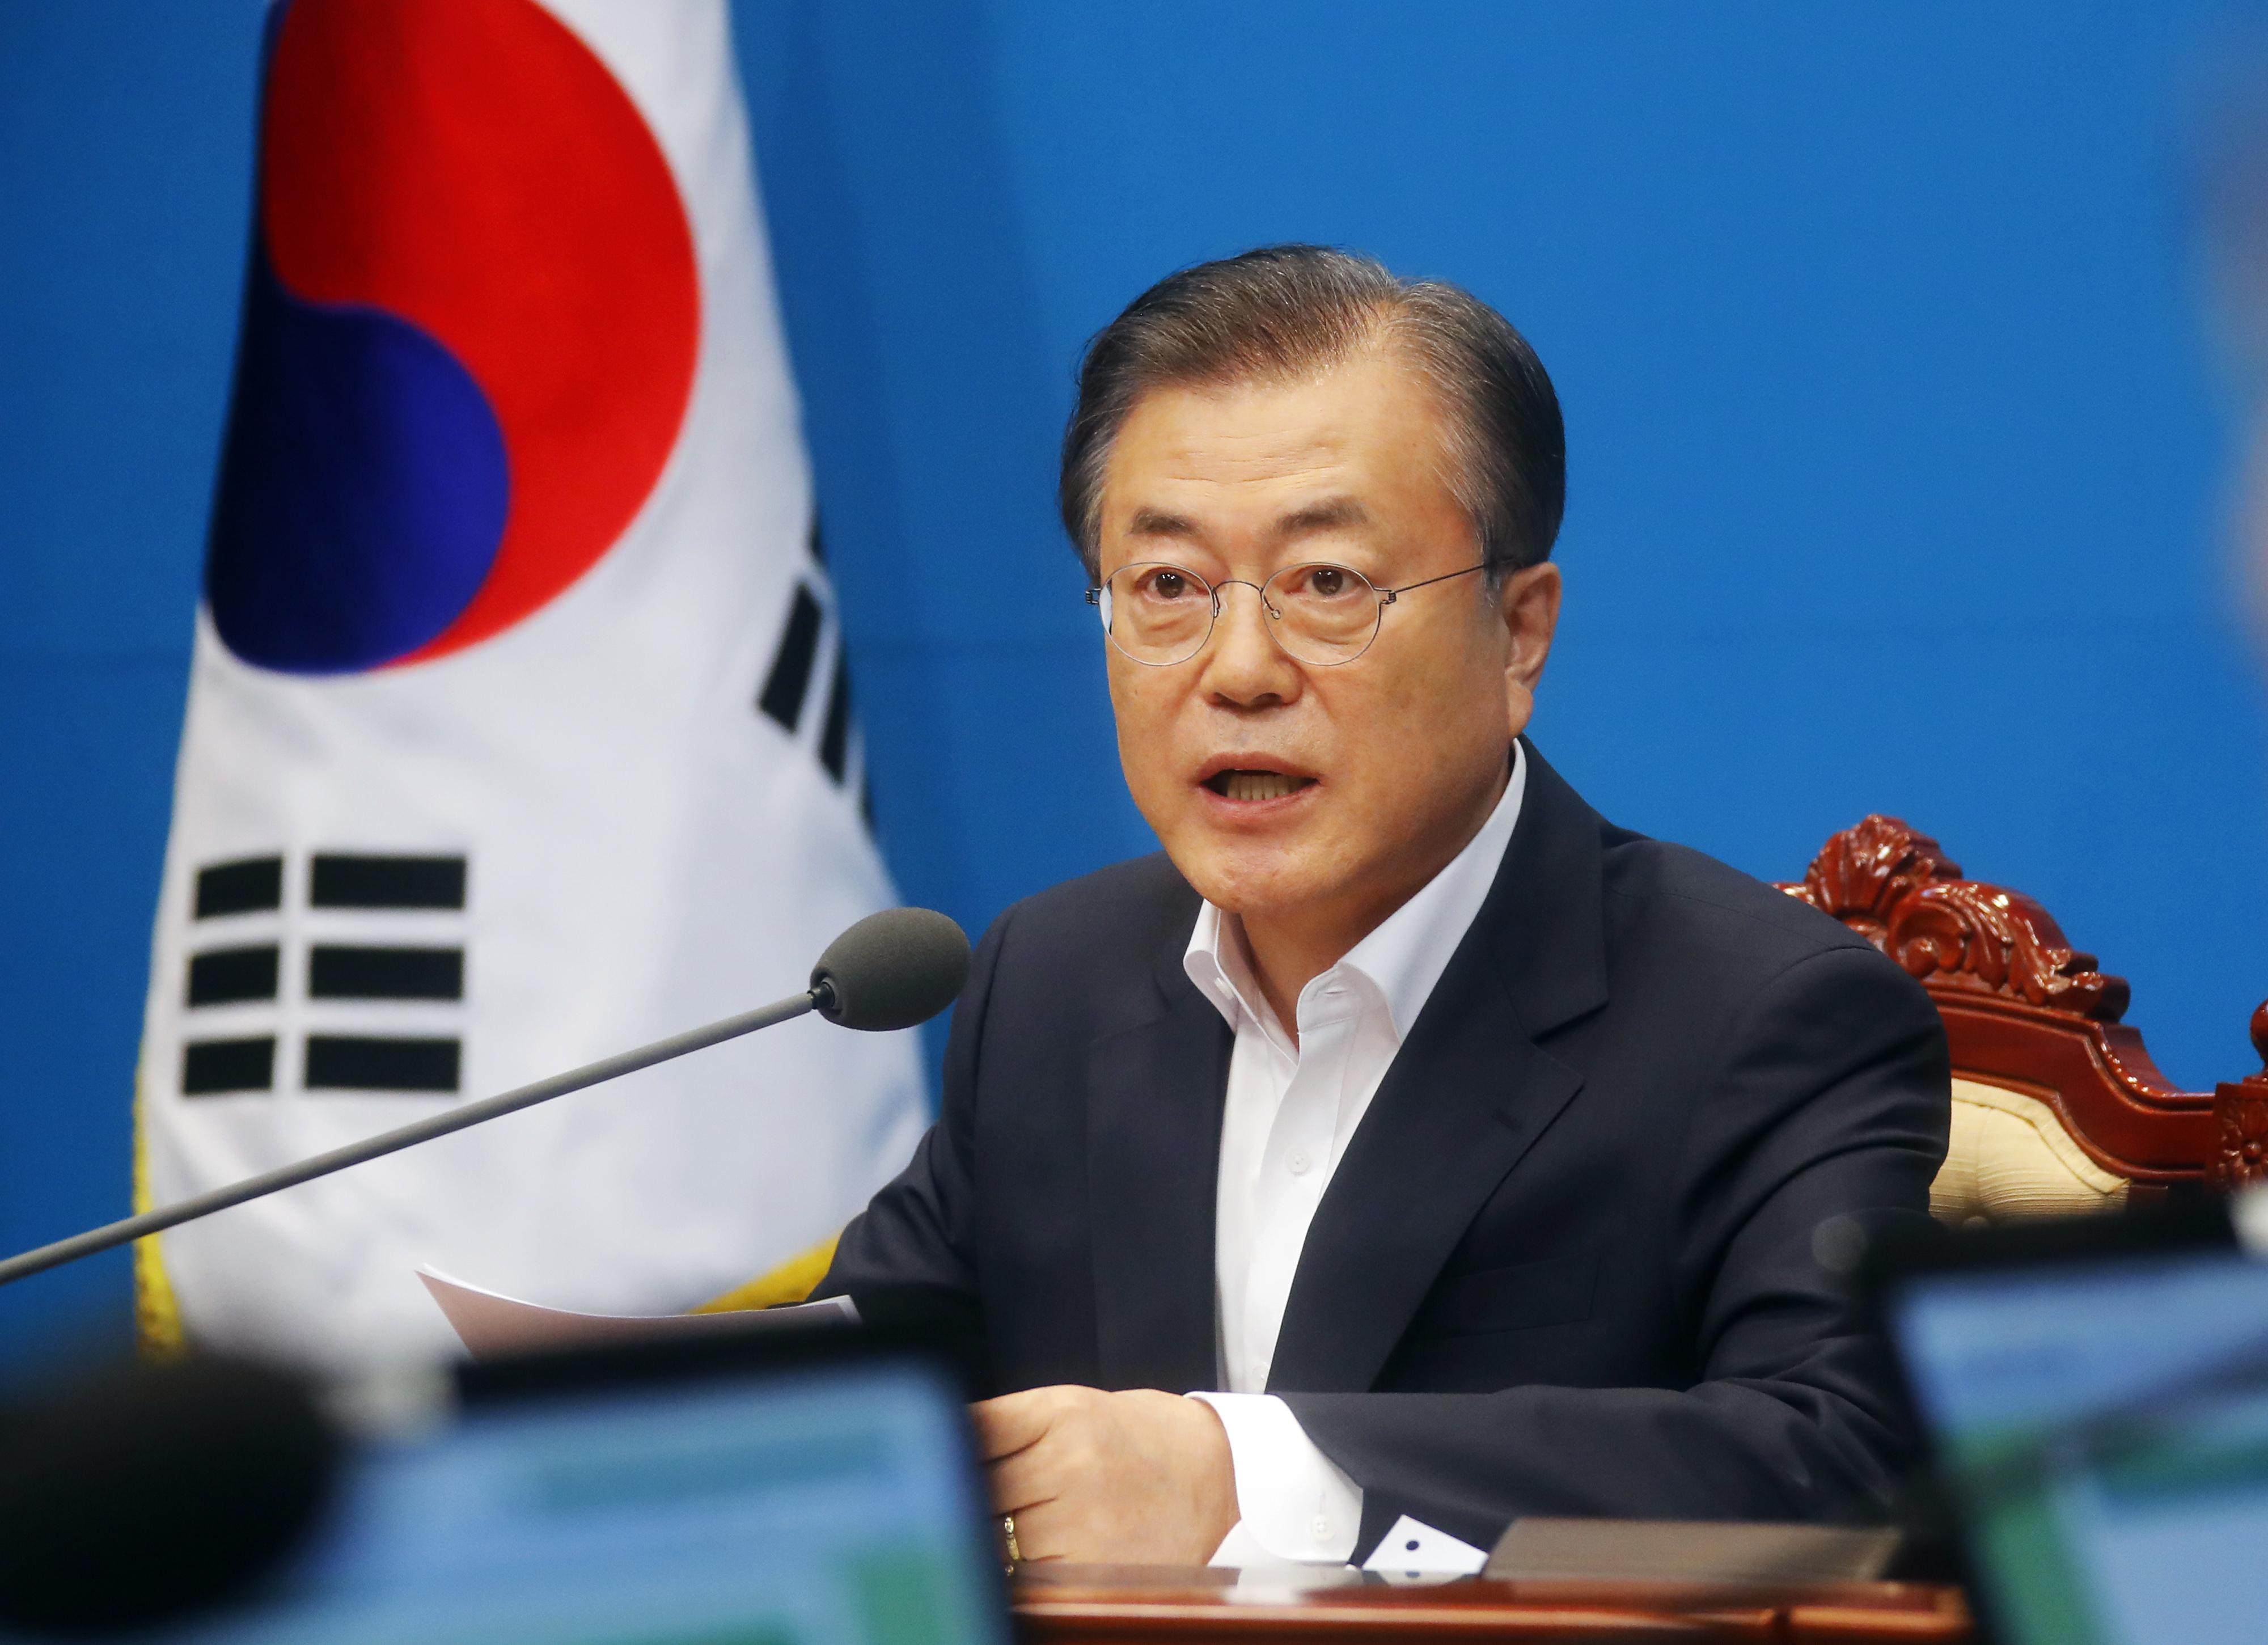 Moon Jae-in fears Iran distracts Trump from North Korea nuke deal